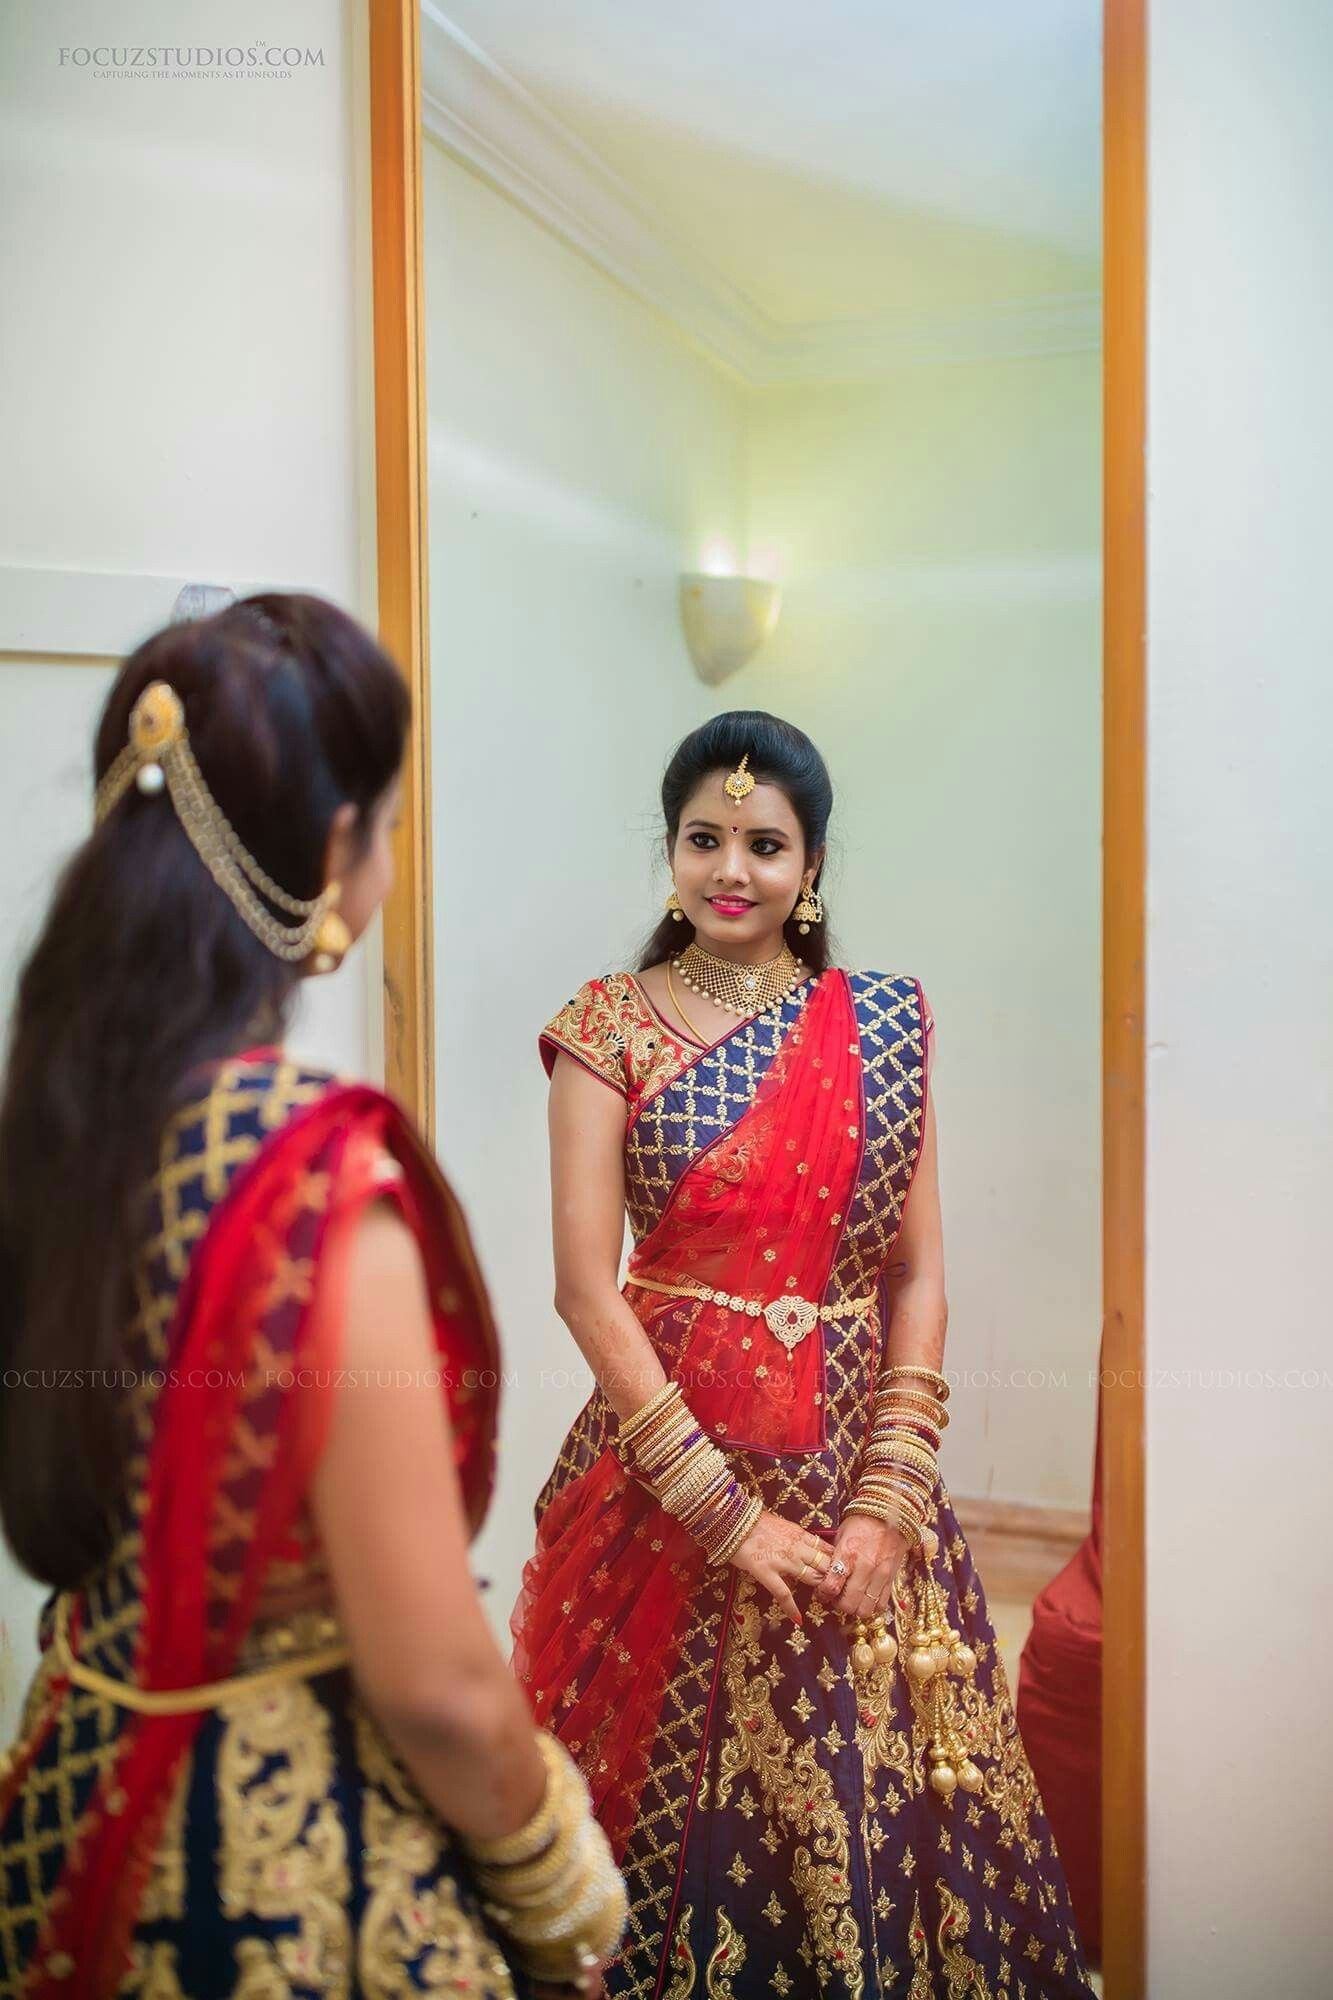 Hair Style   Hairstyles In 2019   Indian Bridal Hairstyles, South with regard to Best Hairstyle For South Indian Wedding Reception